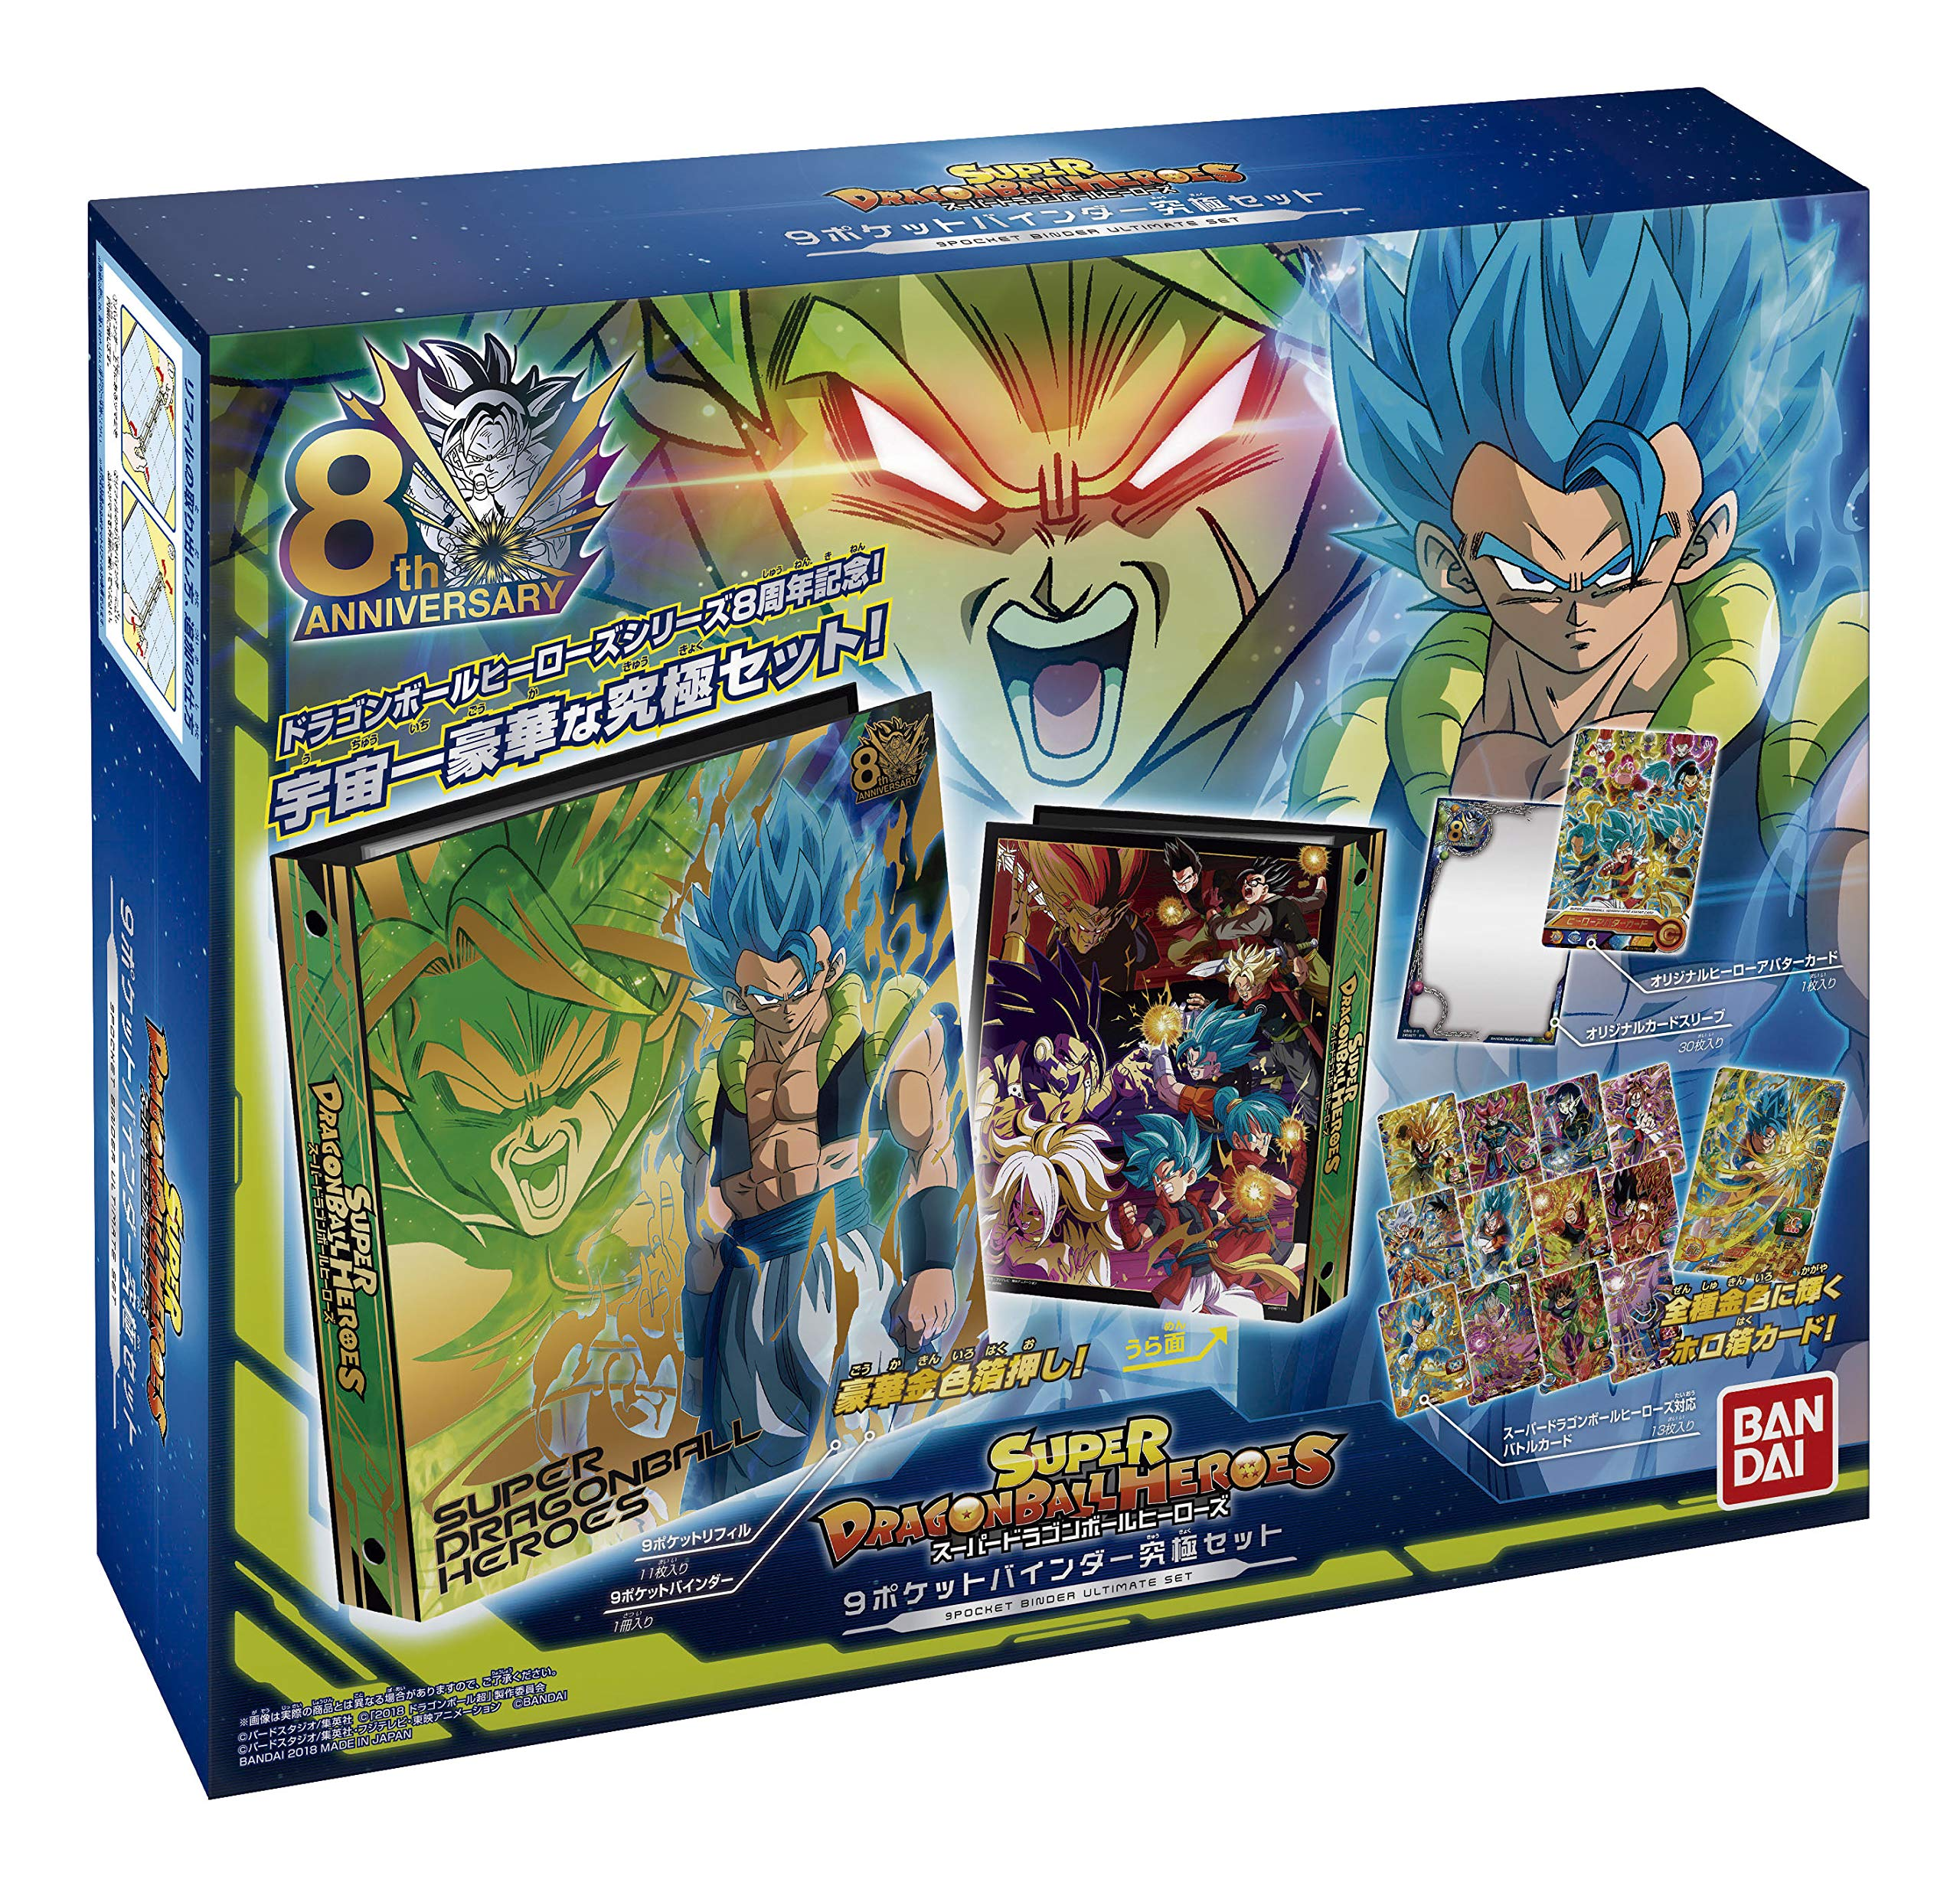 BANDAI Super Dragon Ball Heroes Official 9 Pocket Binder Ultimate Set